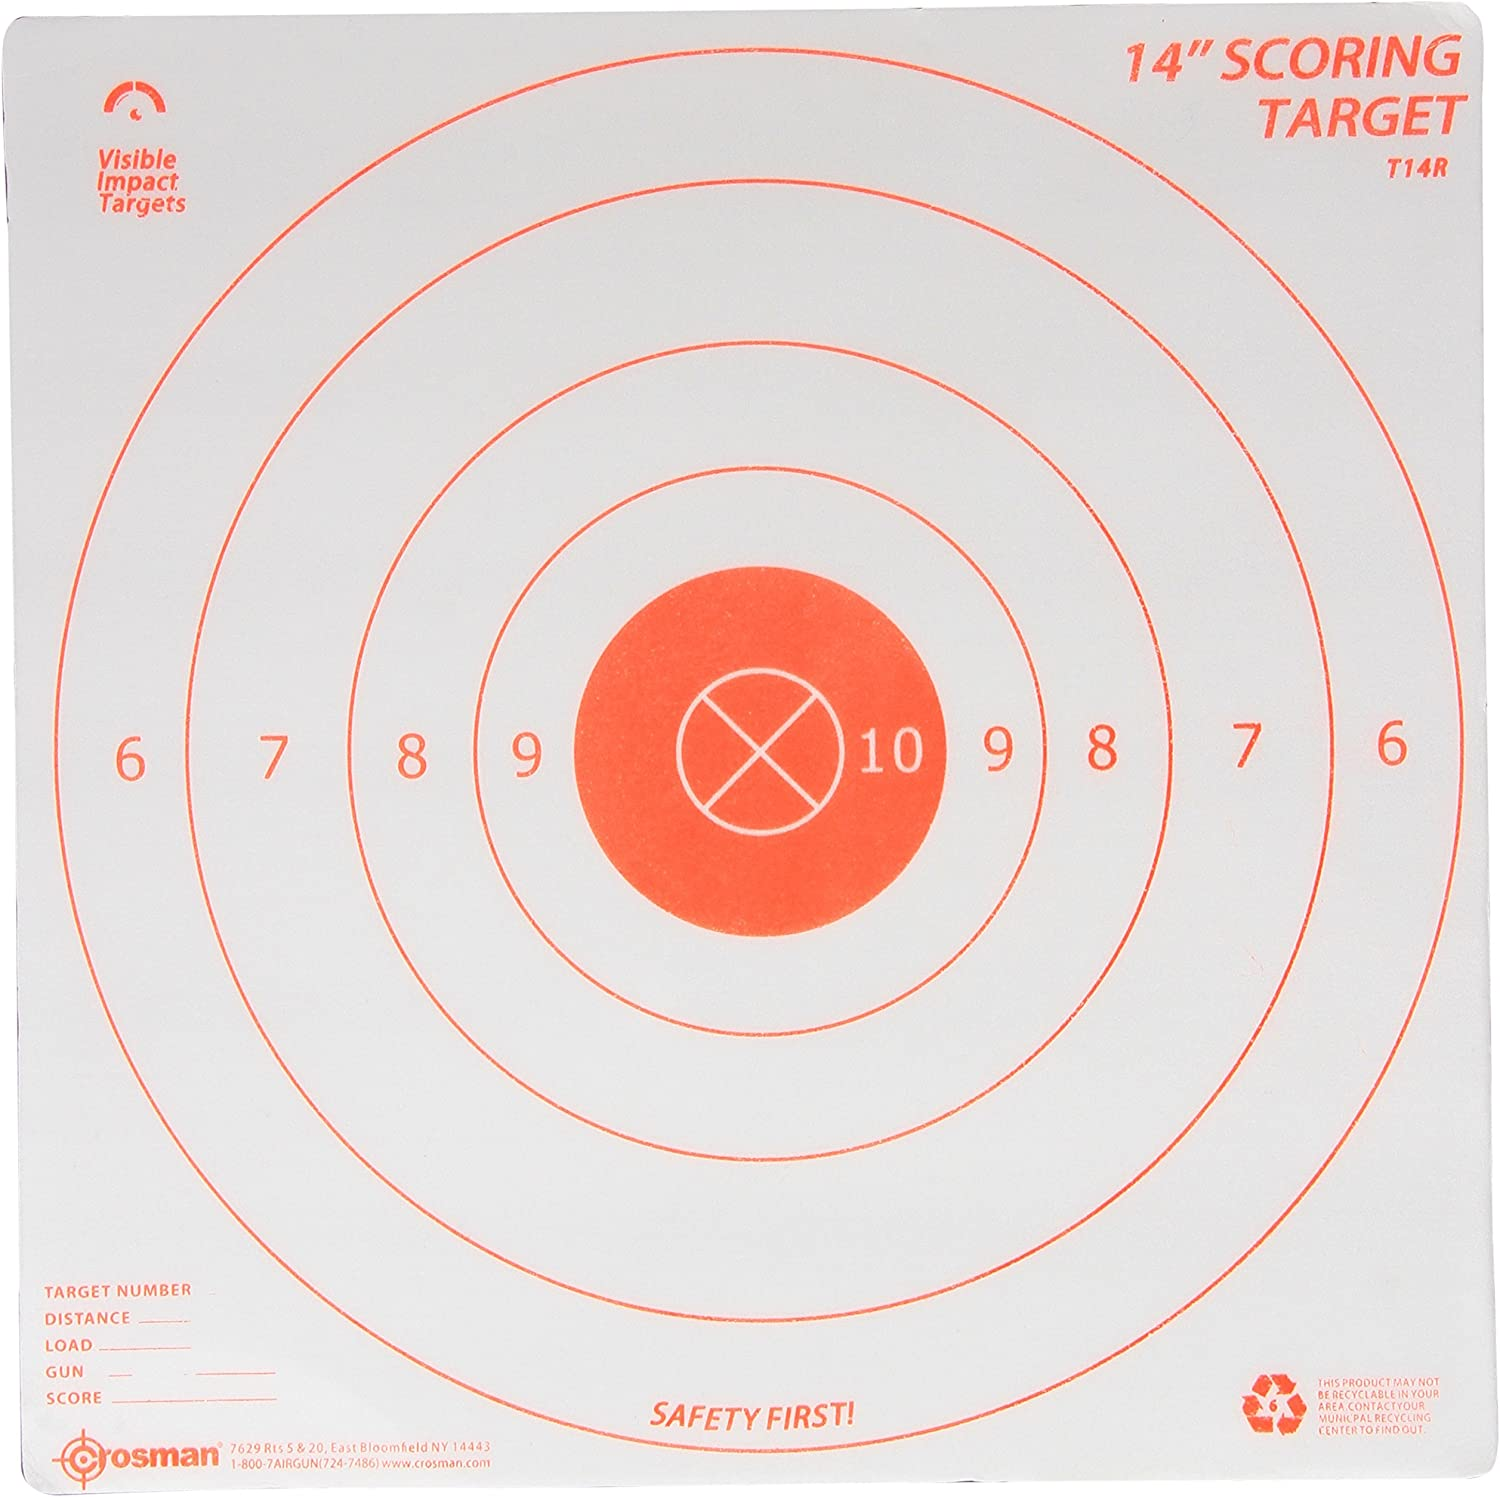 Crosman Visible Impact Target 3 All items in the store Targets Portland Mall Range 14-Inch Pack